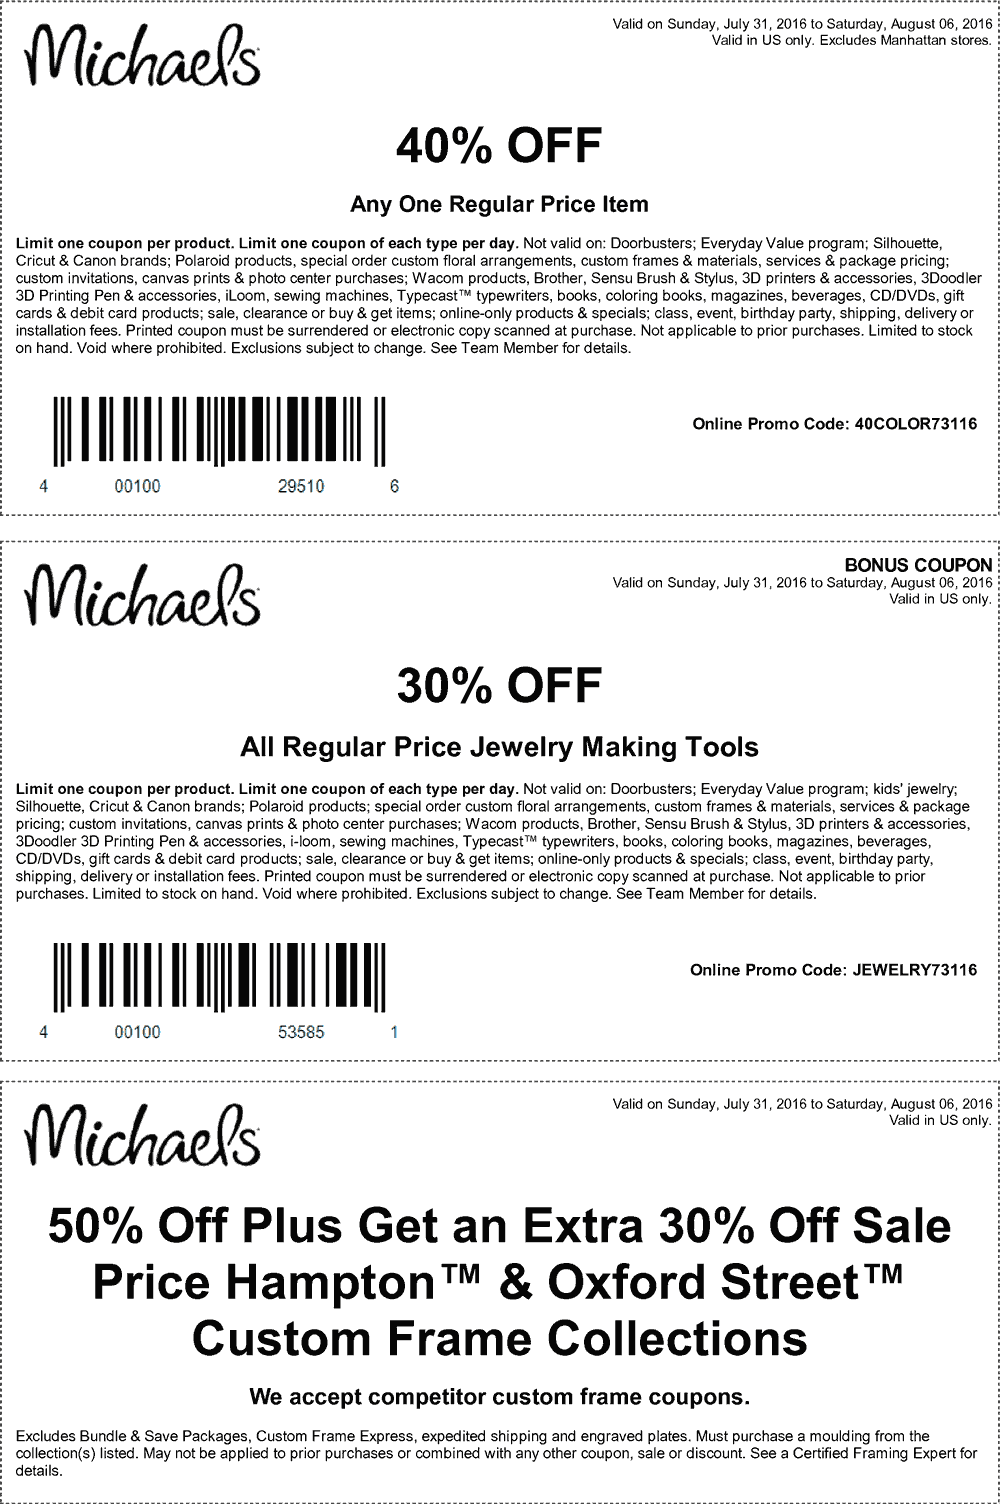 Michaels Coupon May 2017 40% off a single item at Michaels, or online via promo code 40COLOR73116